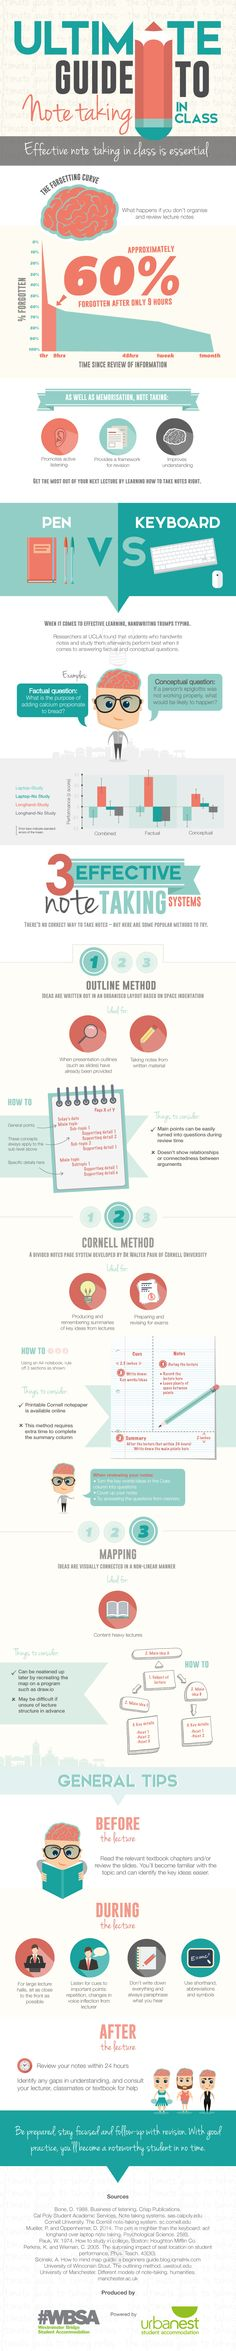 Master the art of taking notes in class and lecturers with this infographic from The Journal